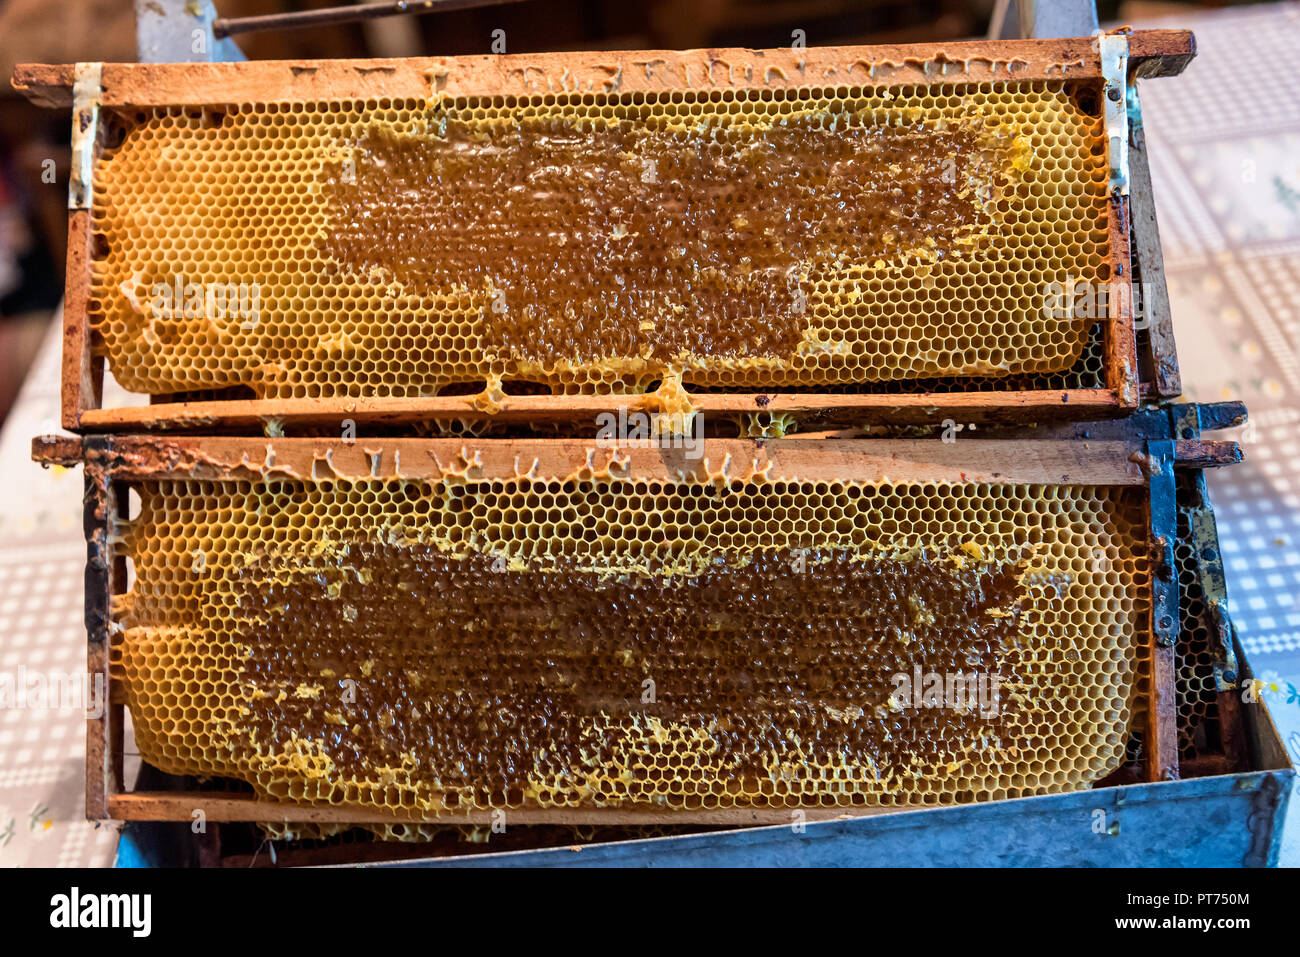 Bee Honeycomb Frame with unfinished Honey and parts of wax - Stock Image